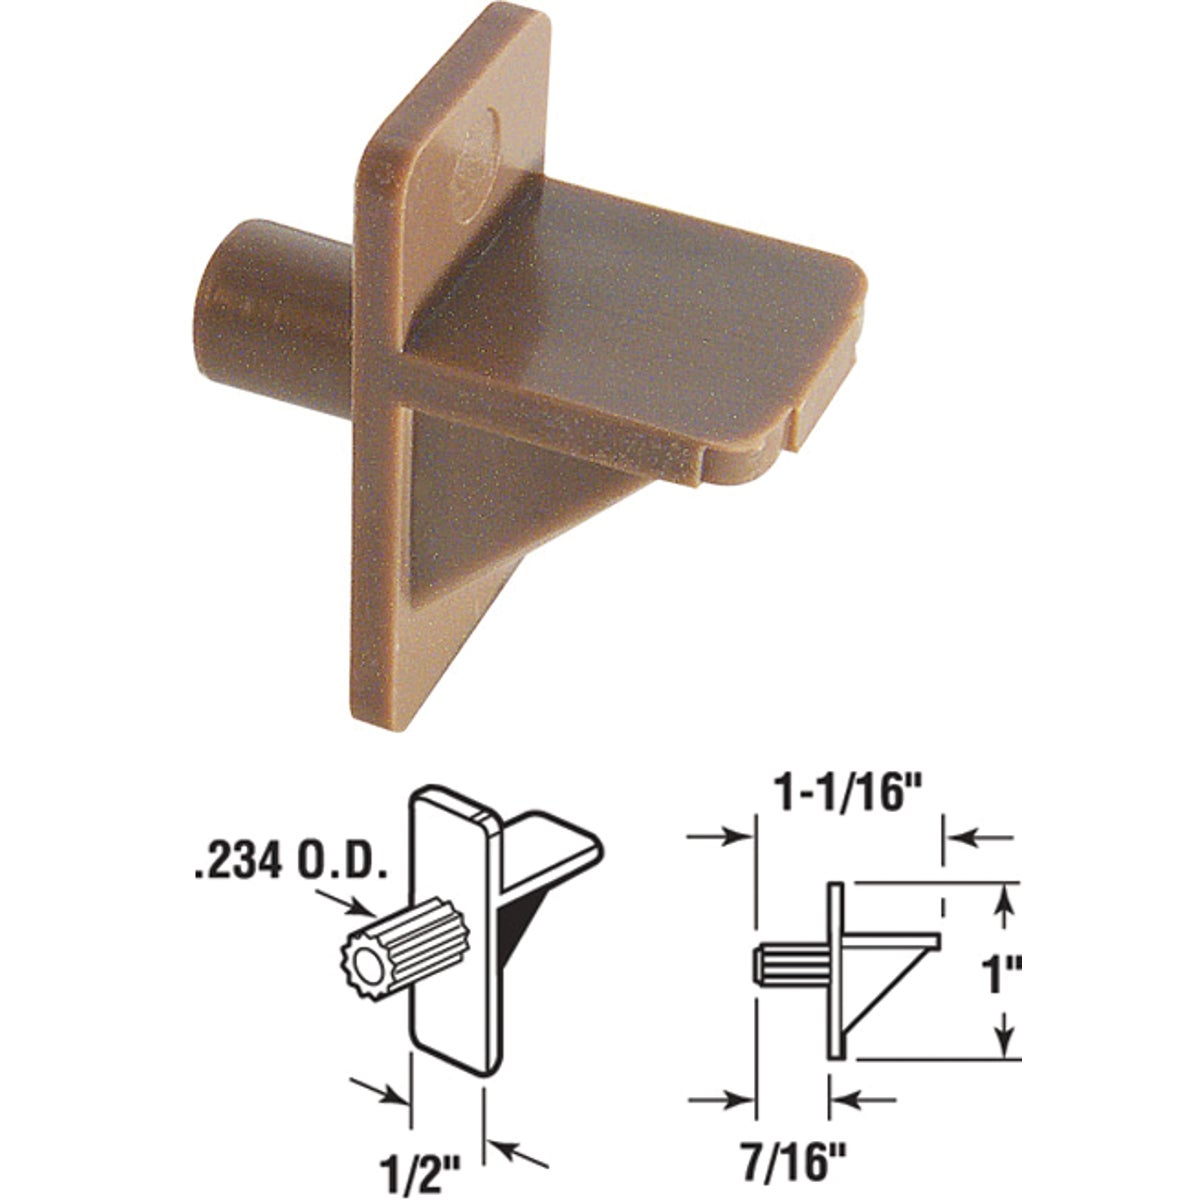 BRN SHELF SUPPORT - 242154 by Prime Line Products